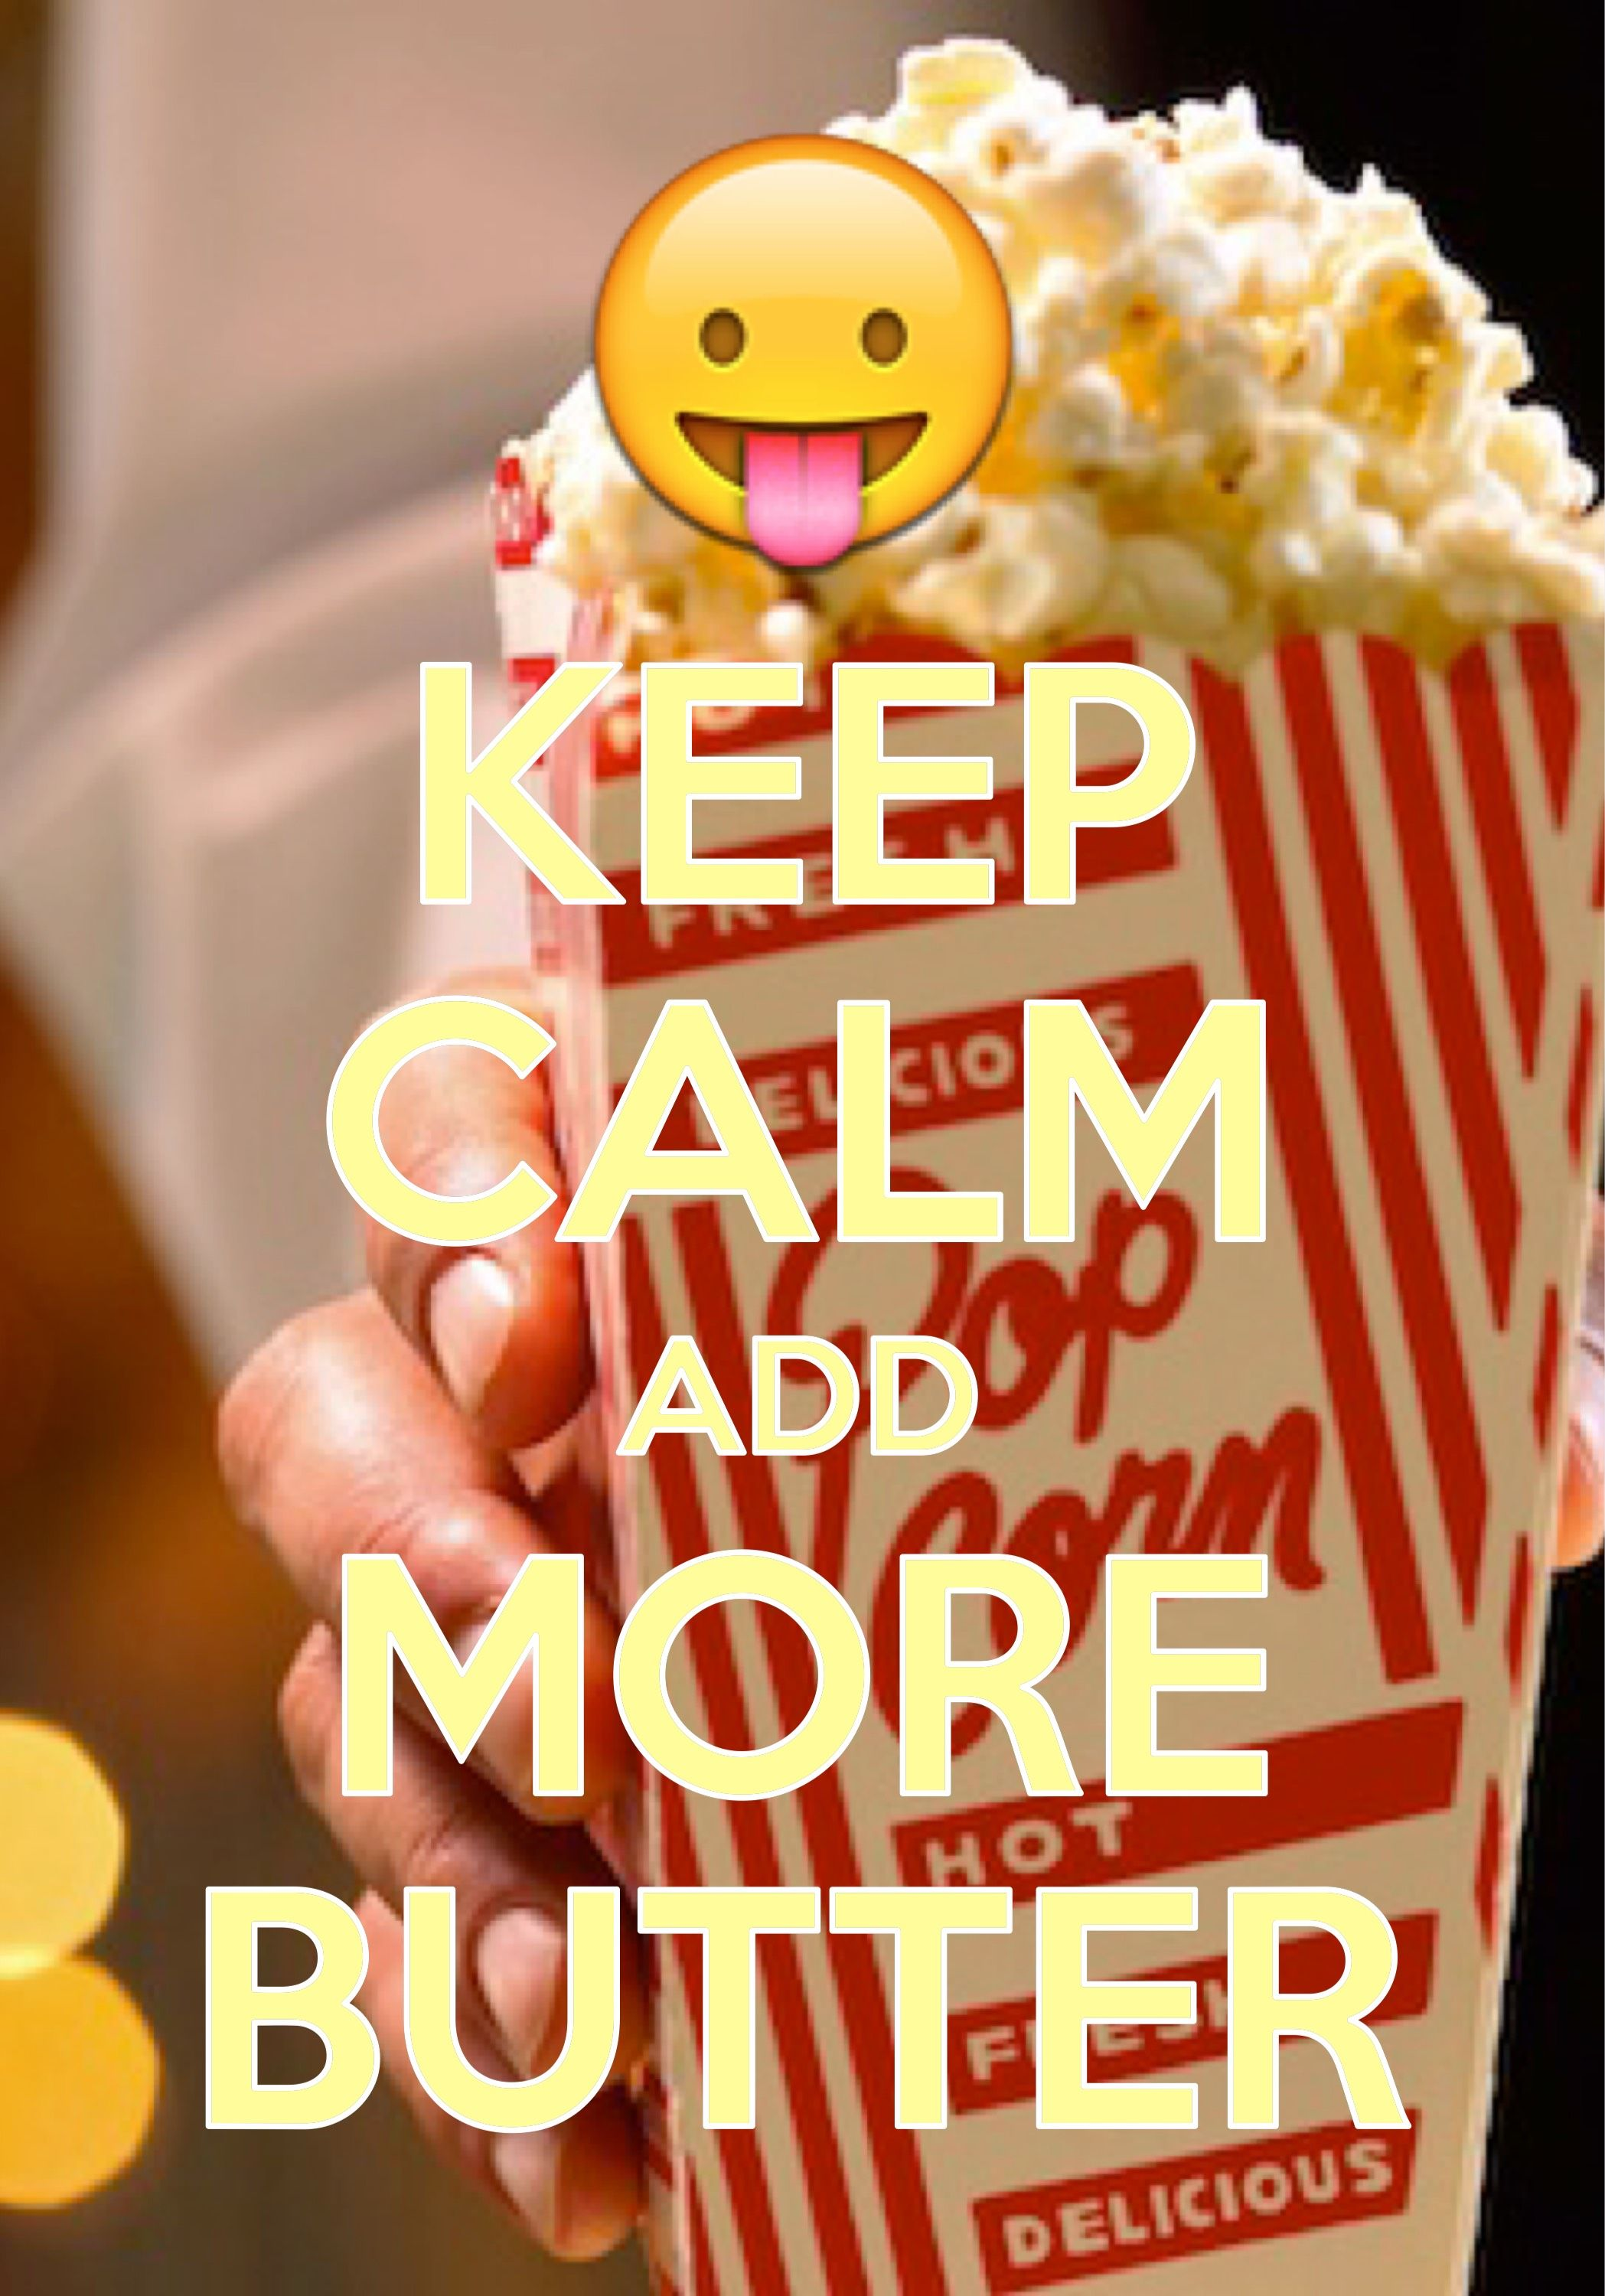 keep calm add more butter / created with Keep Calm and Carry On for iOS #keepcalm #popcorn #morebutter